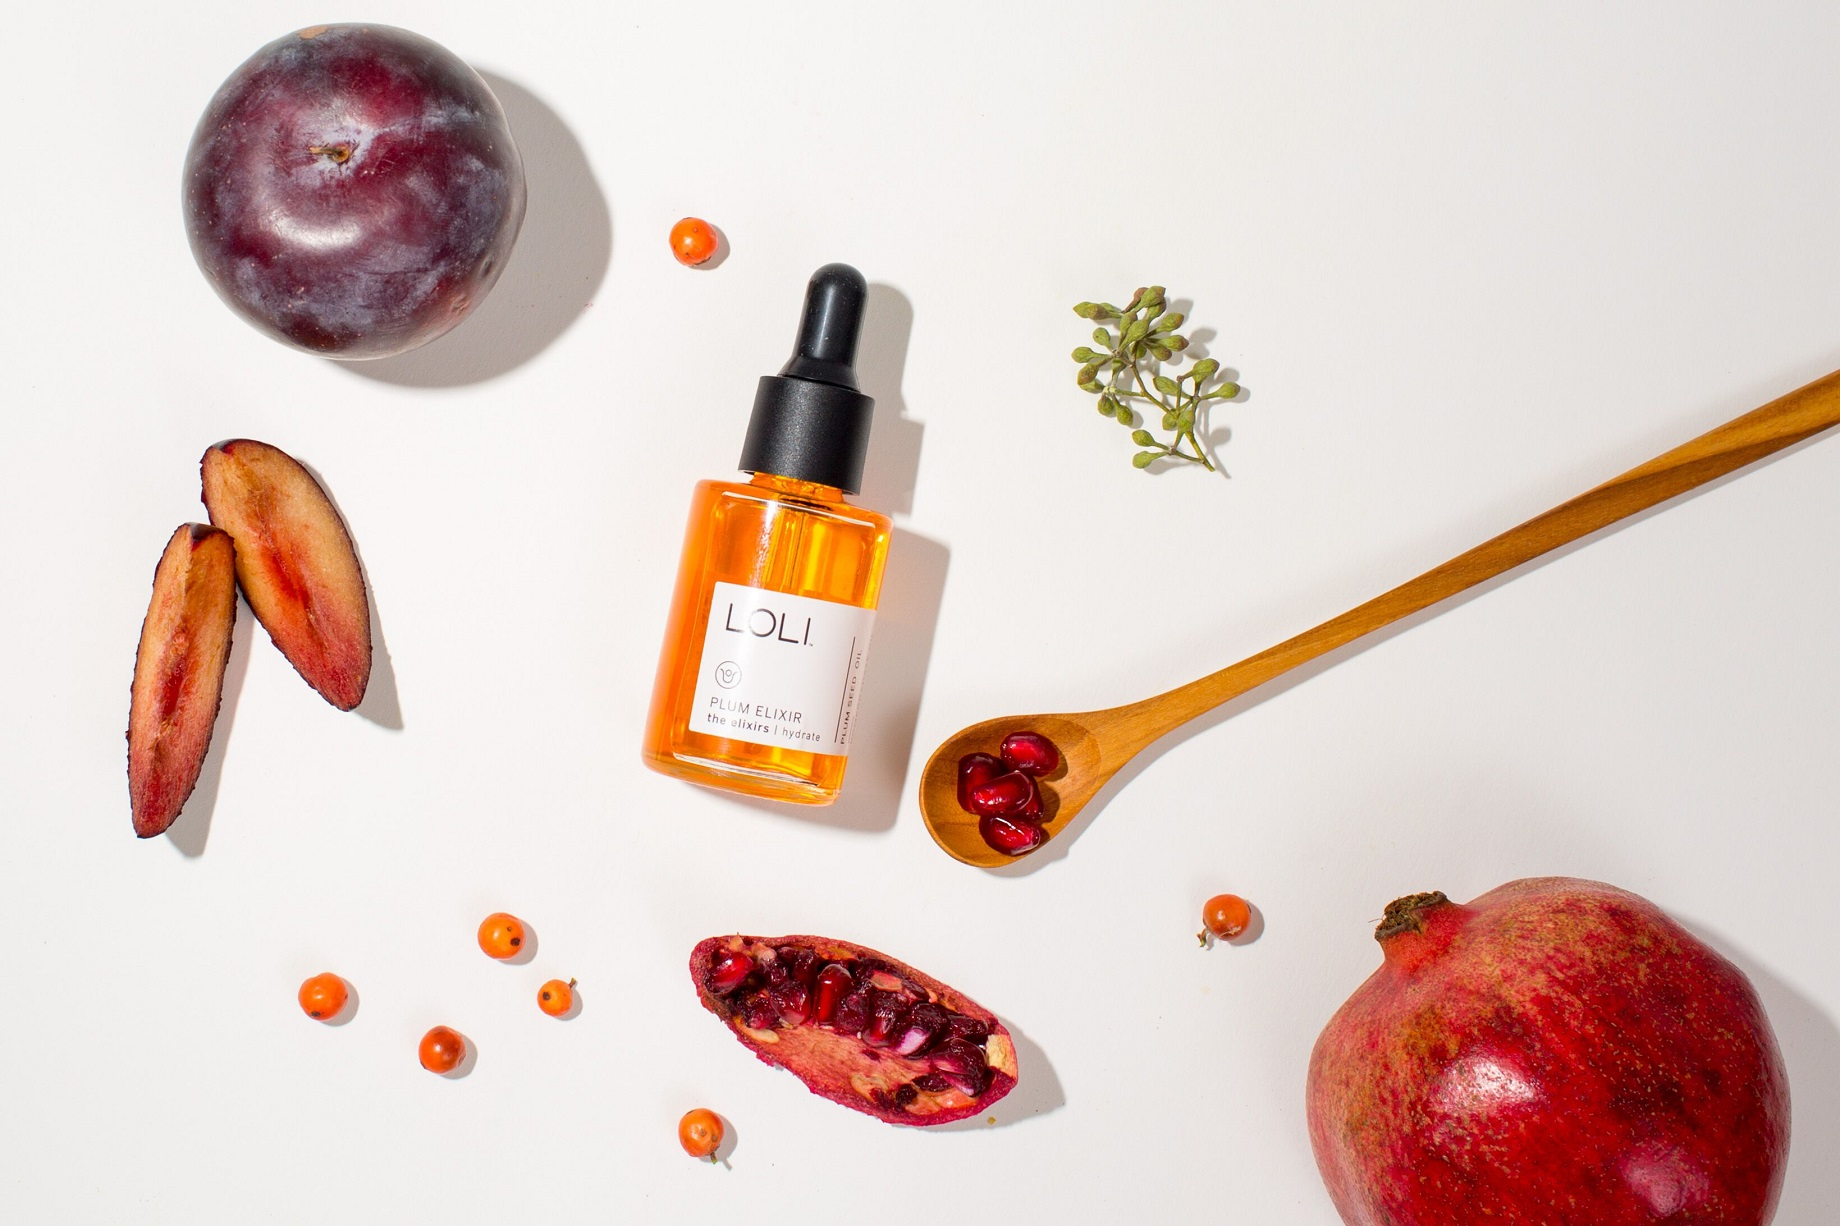 Superfood Skin Elixirs From LOLI Beauty